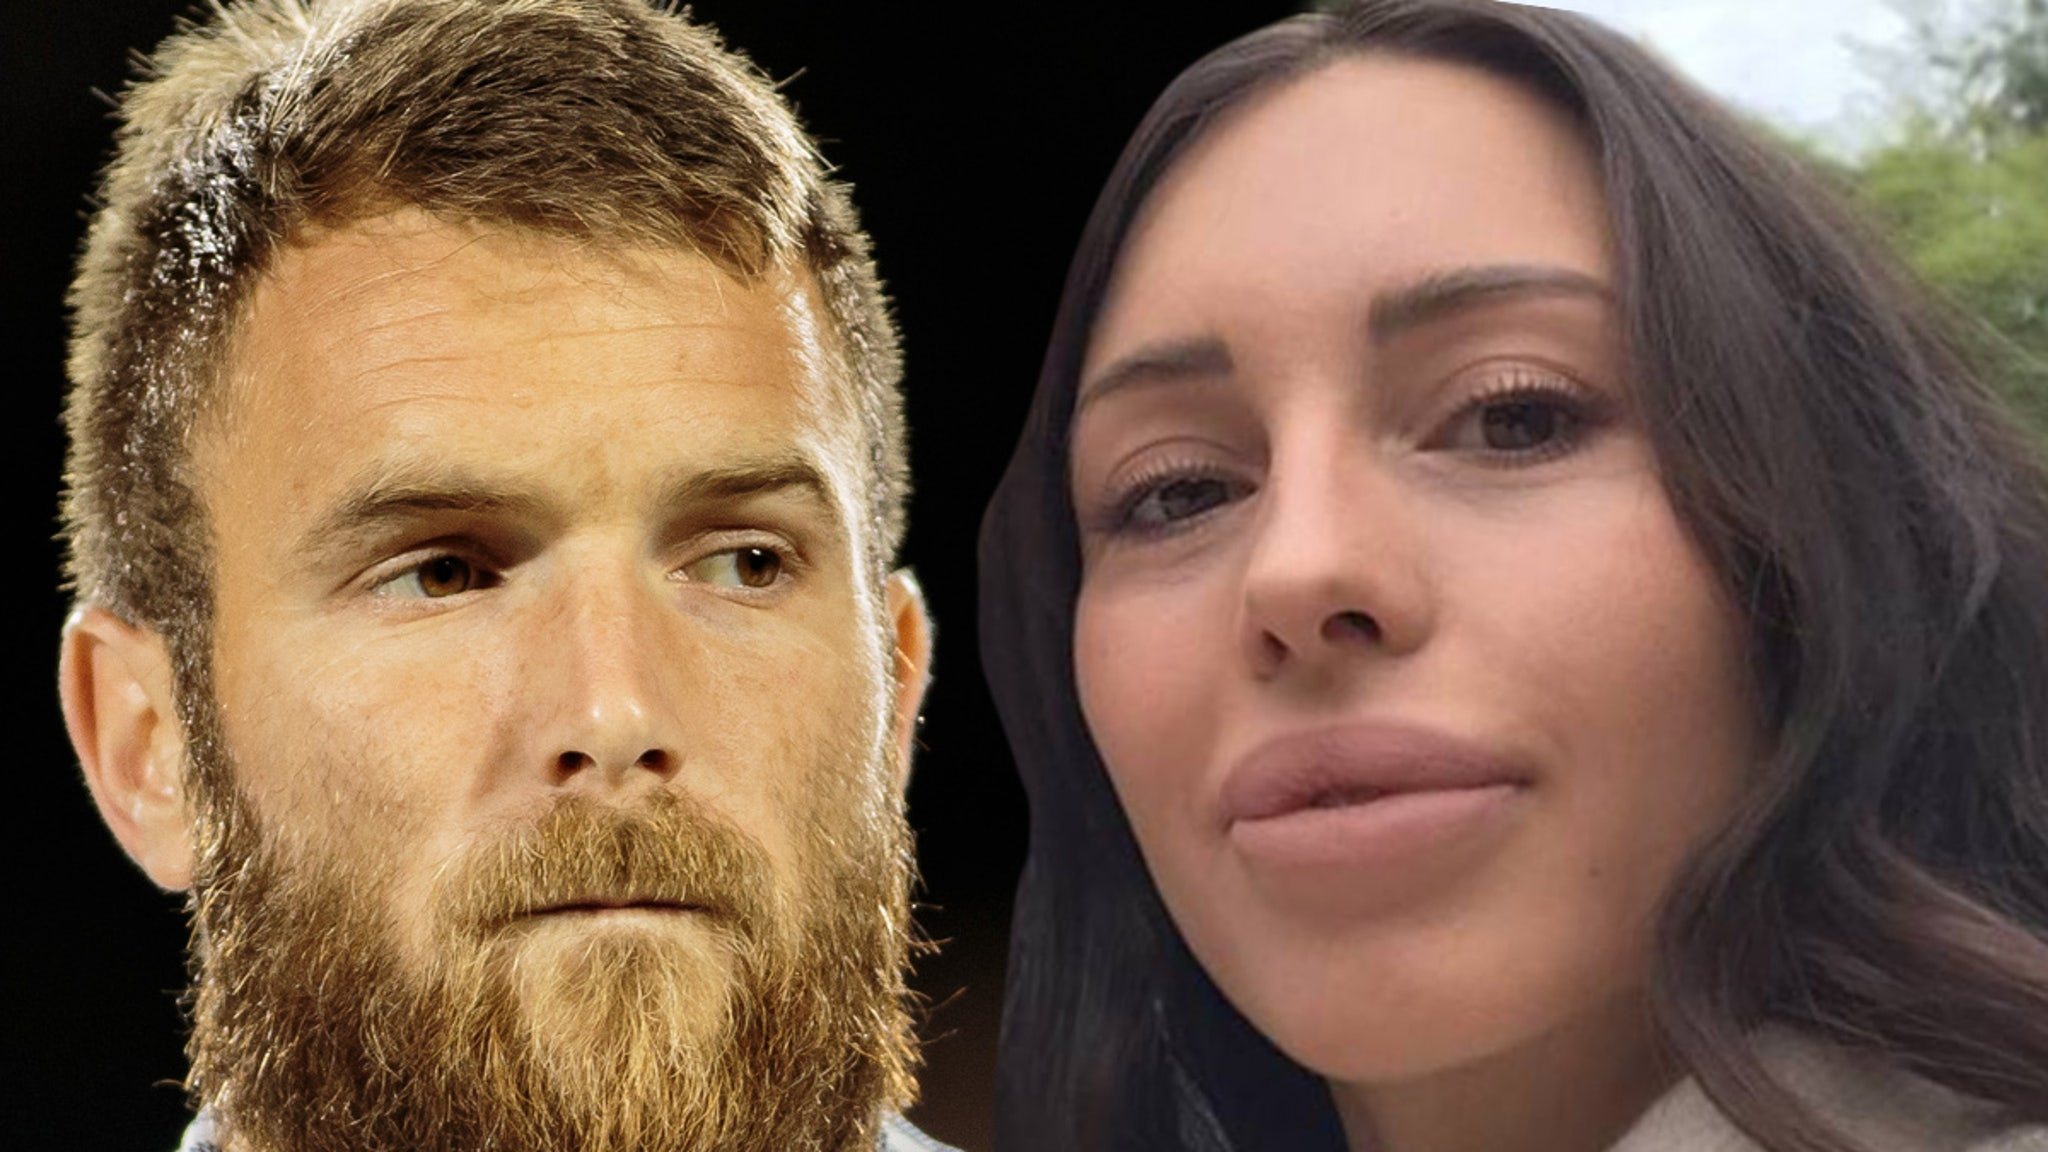 LA Galaxy Release Player Aleksandar Katai After Wife's 'Racist And Violent' Comments